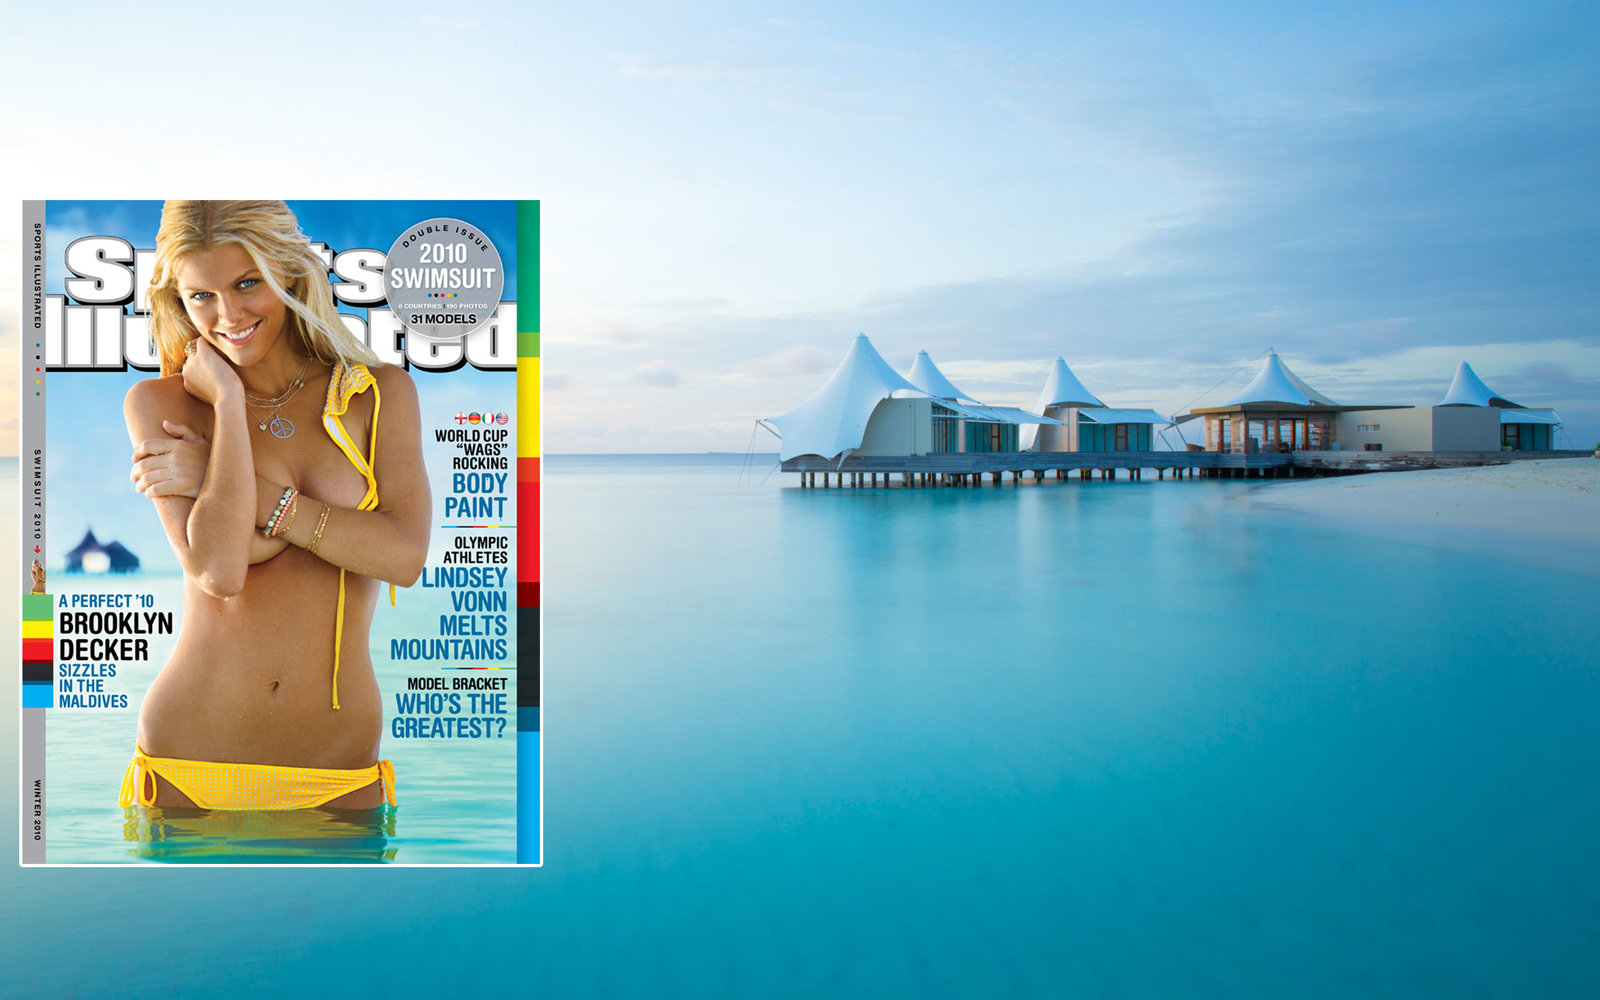 Sports Illustrated Swimsuit Issue 2010 Maldives